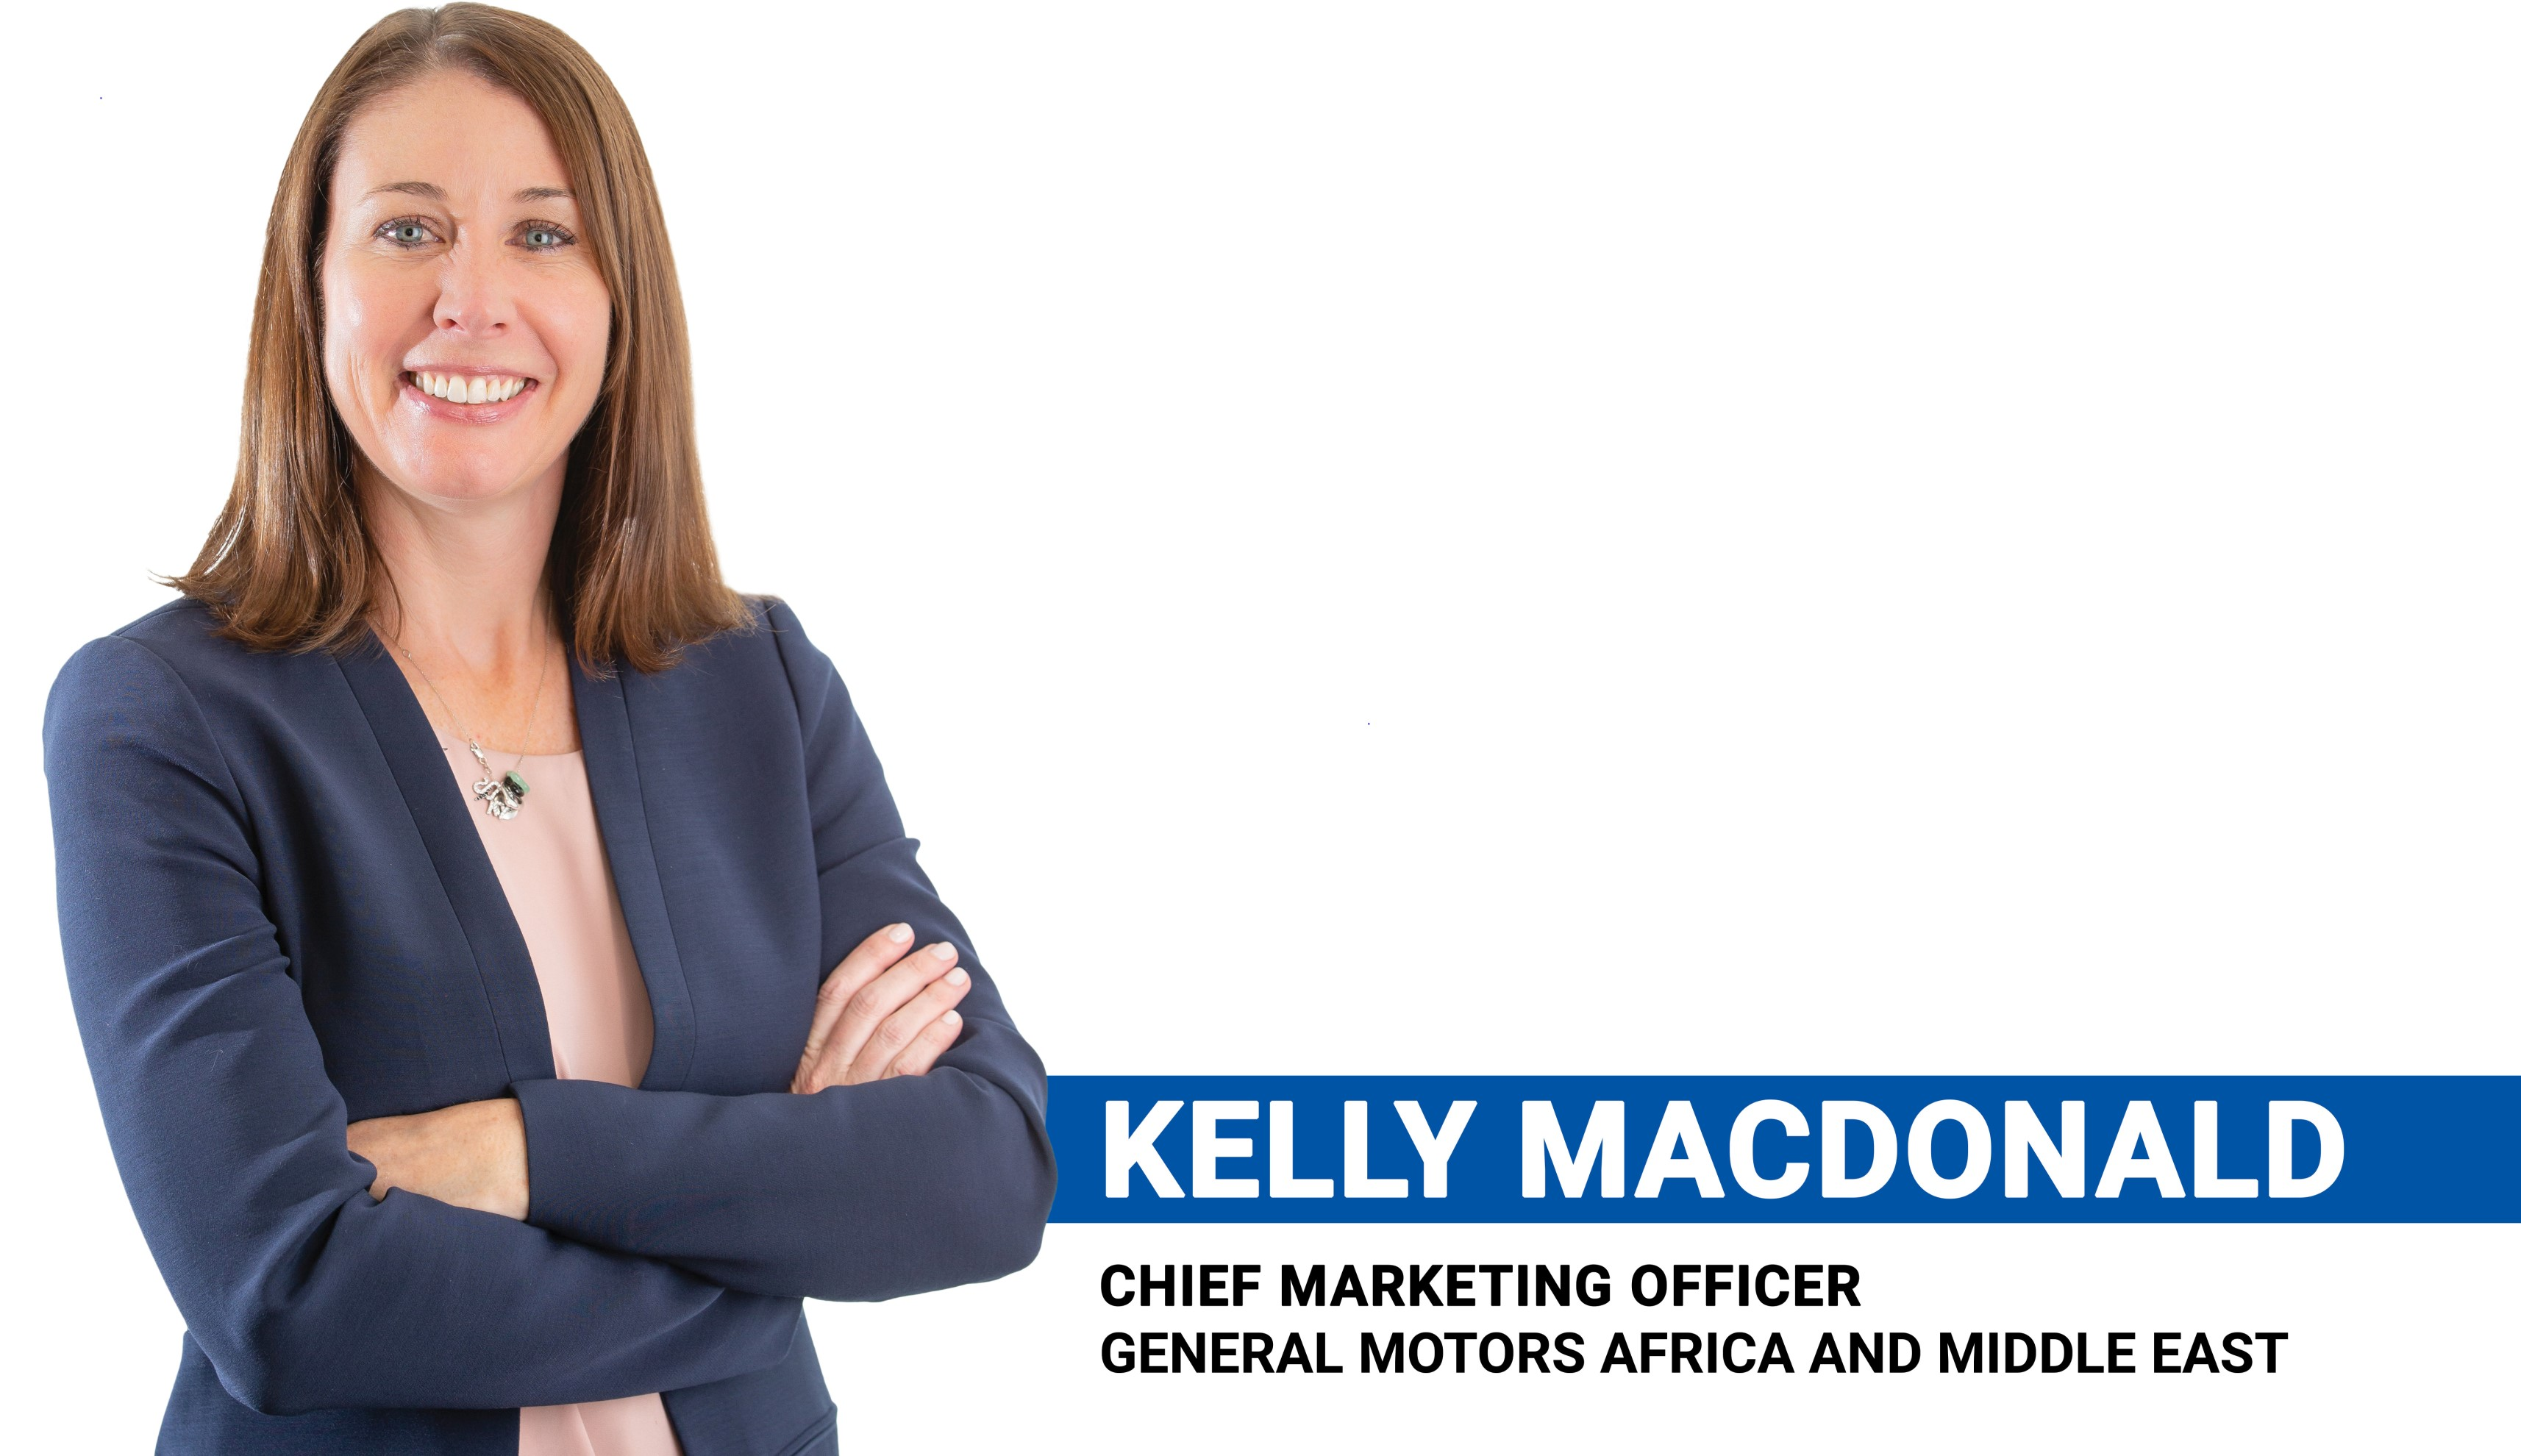 Q&A with Kelly MacDonald - Chief Marketing Officer, General Motors Africa and Middle East